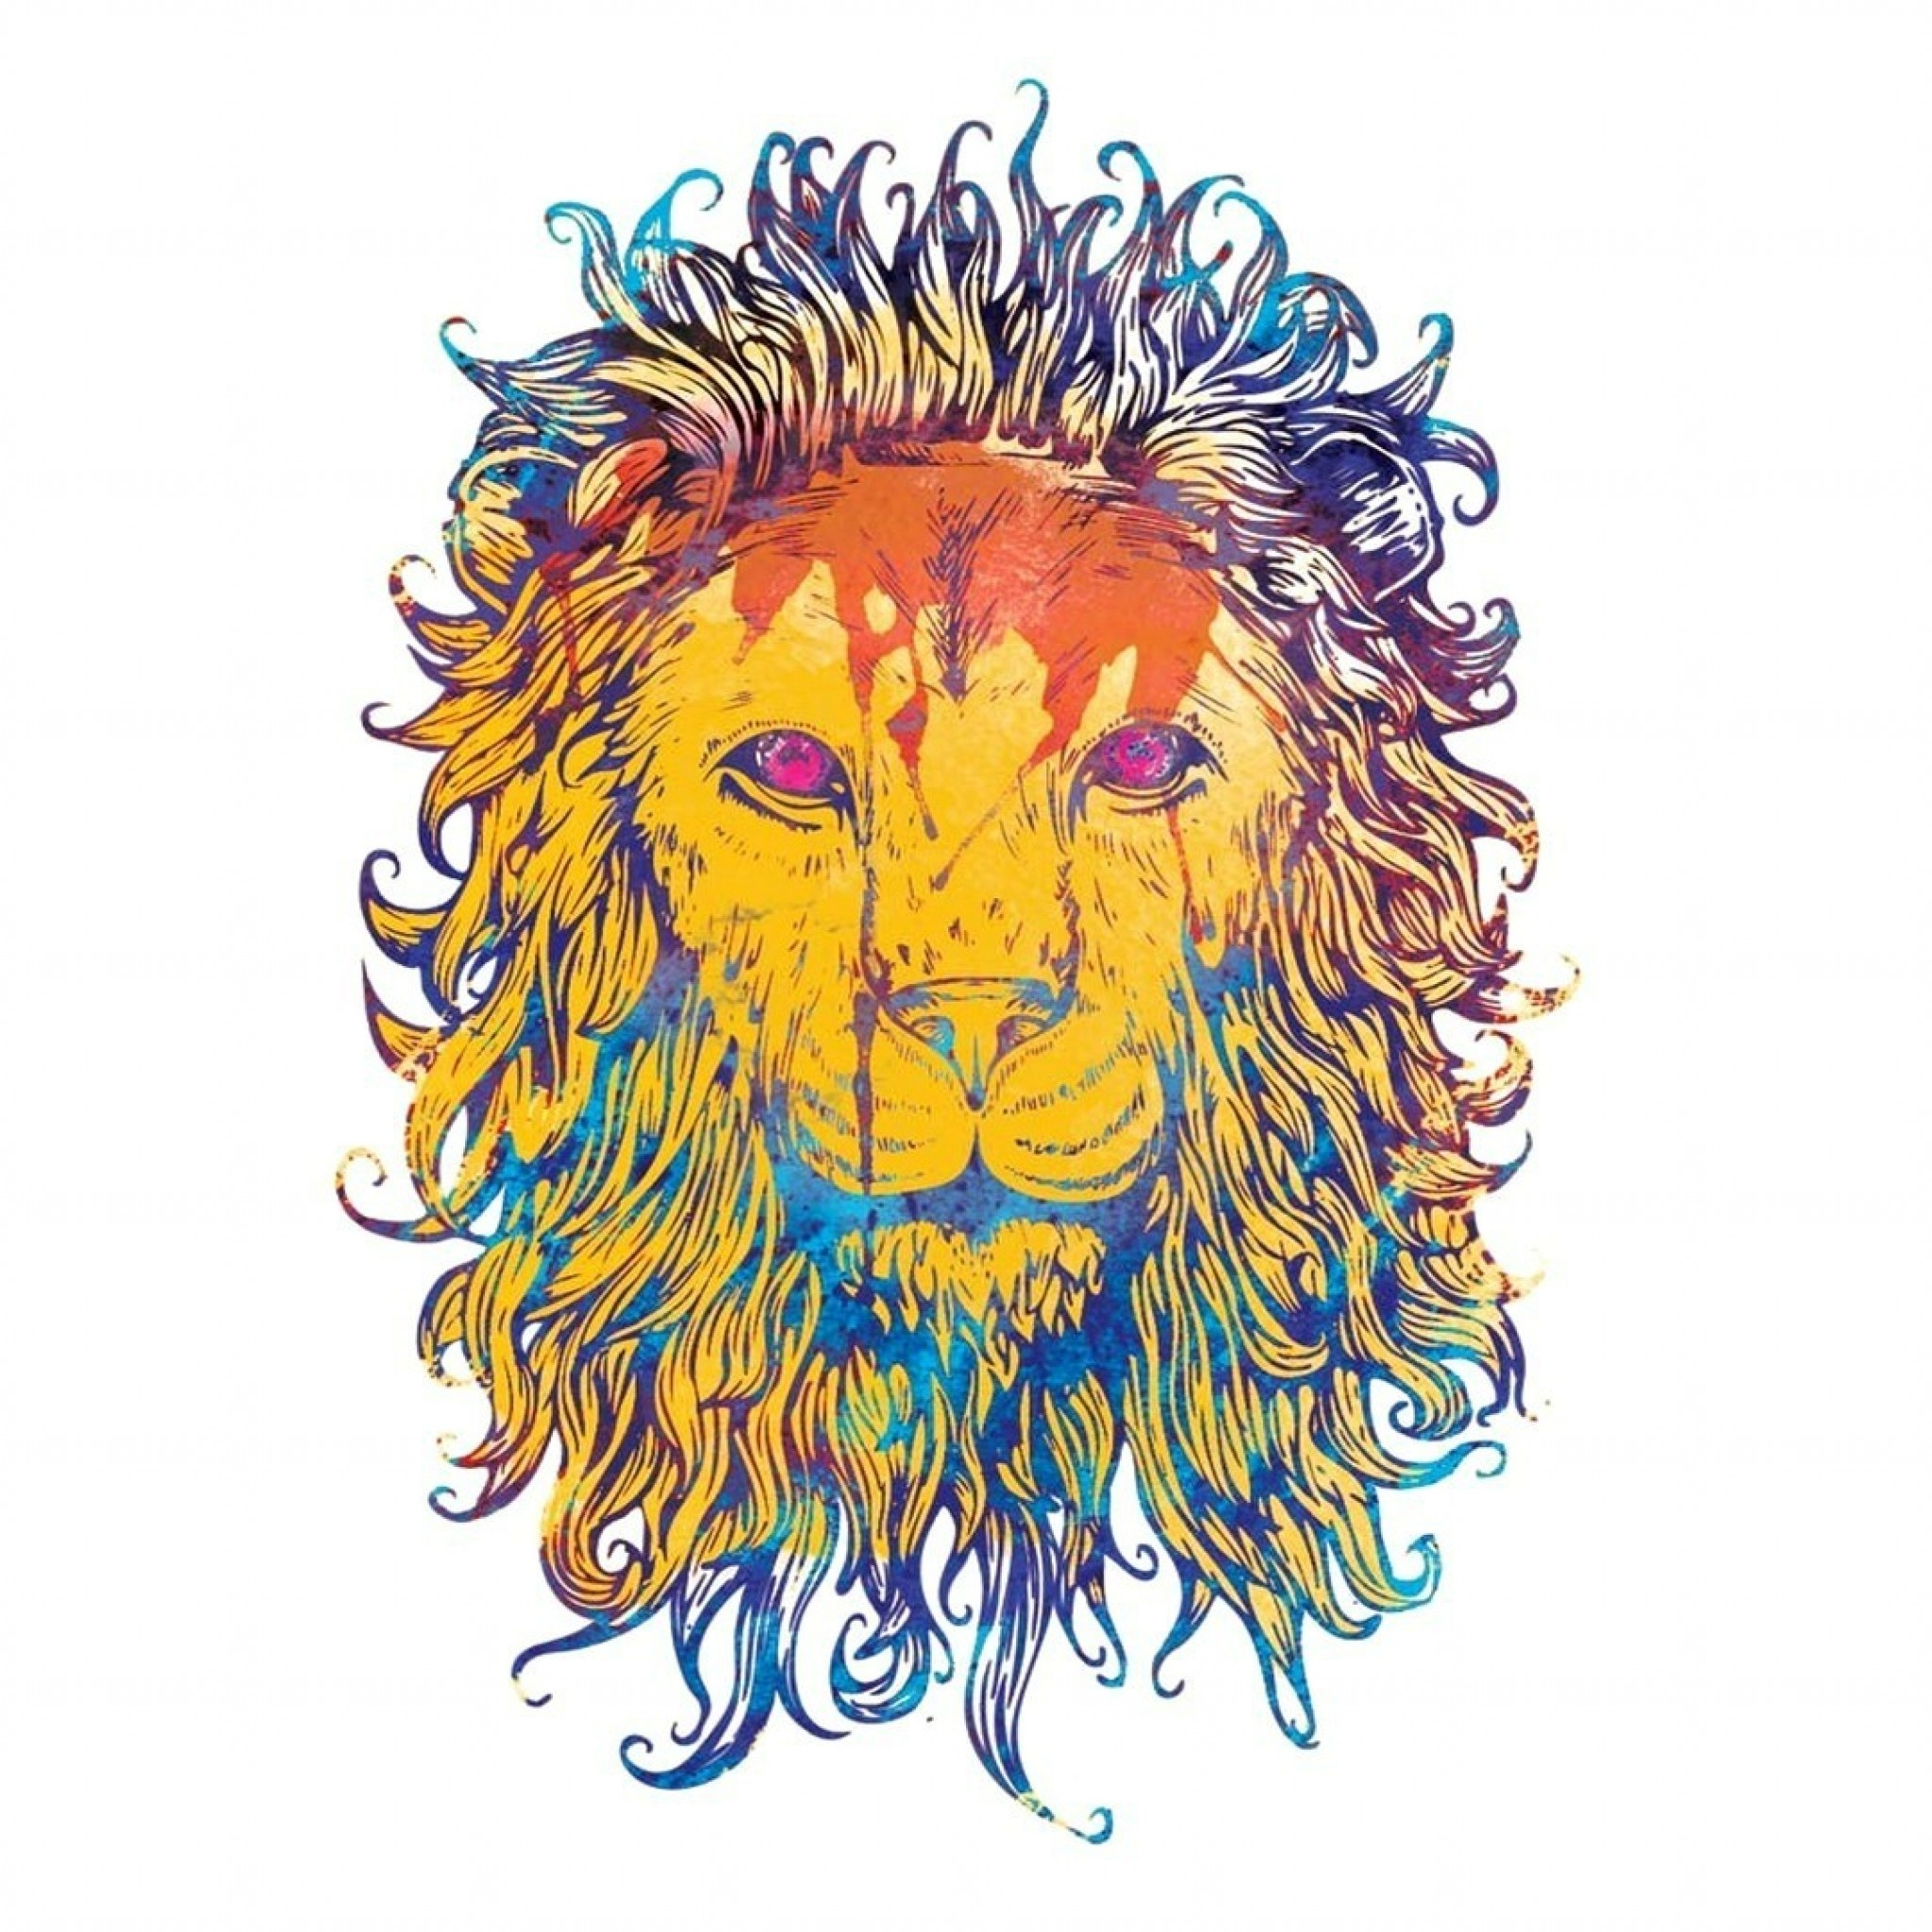 Wallpaper lion, drawing, colorful, king, king of beasts